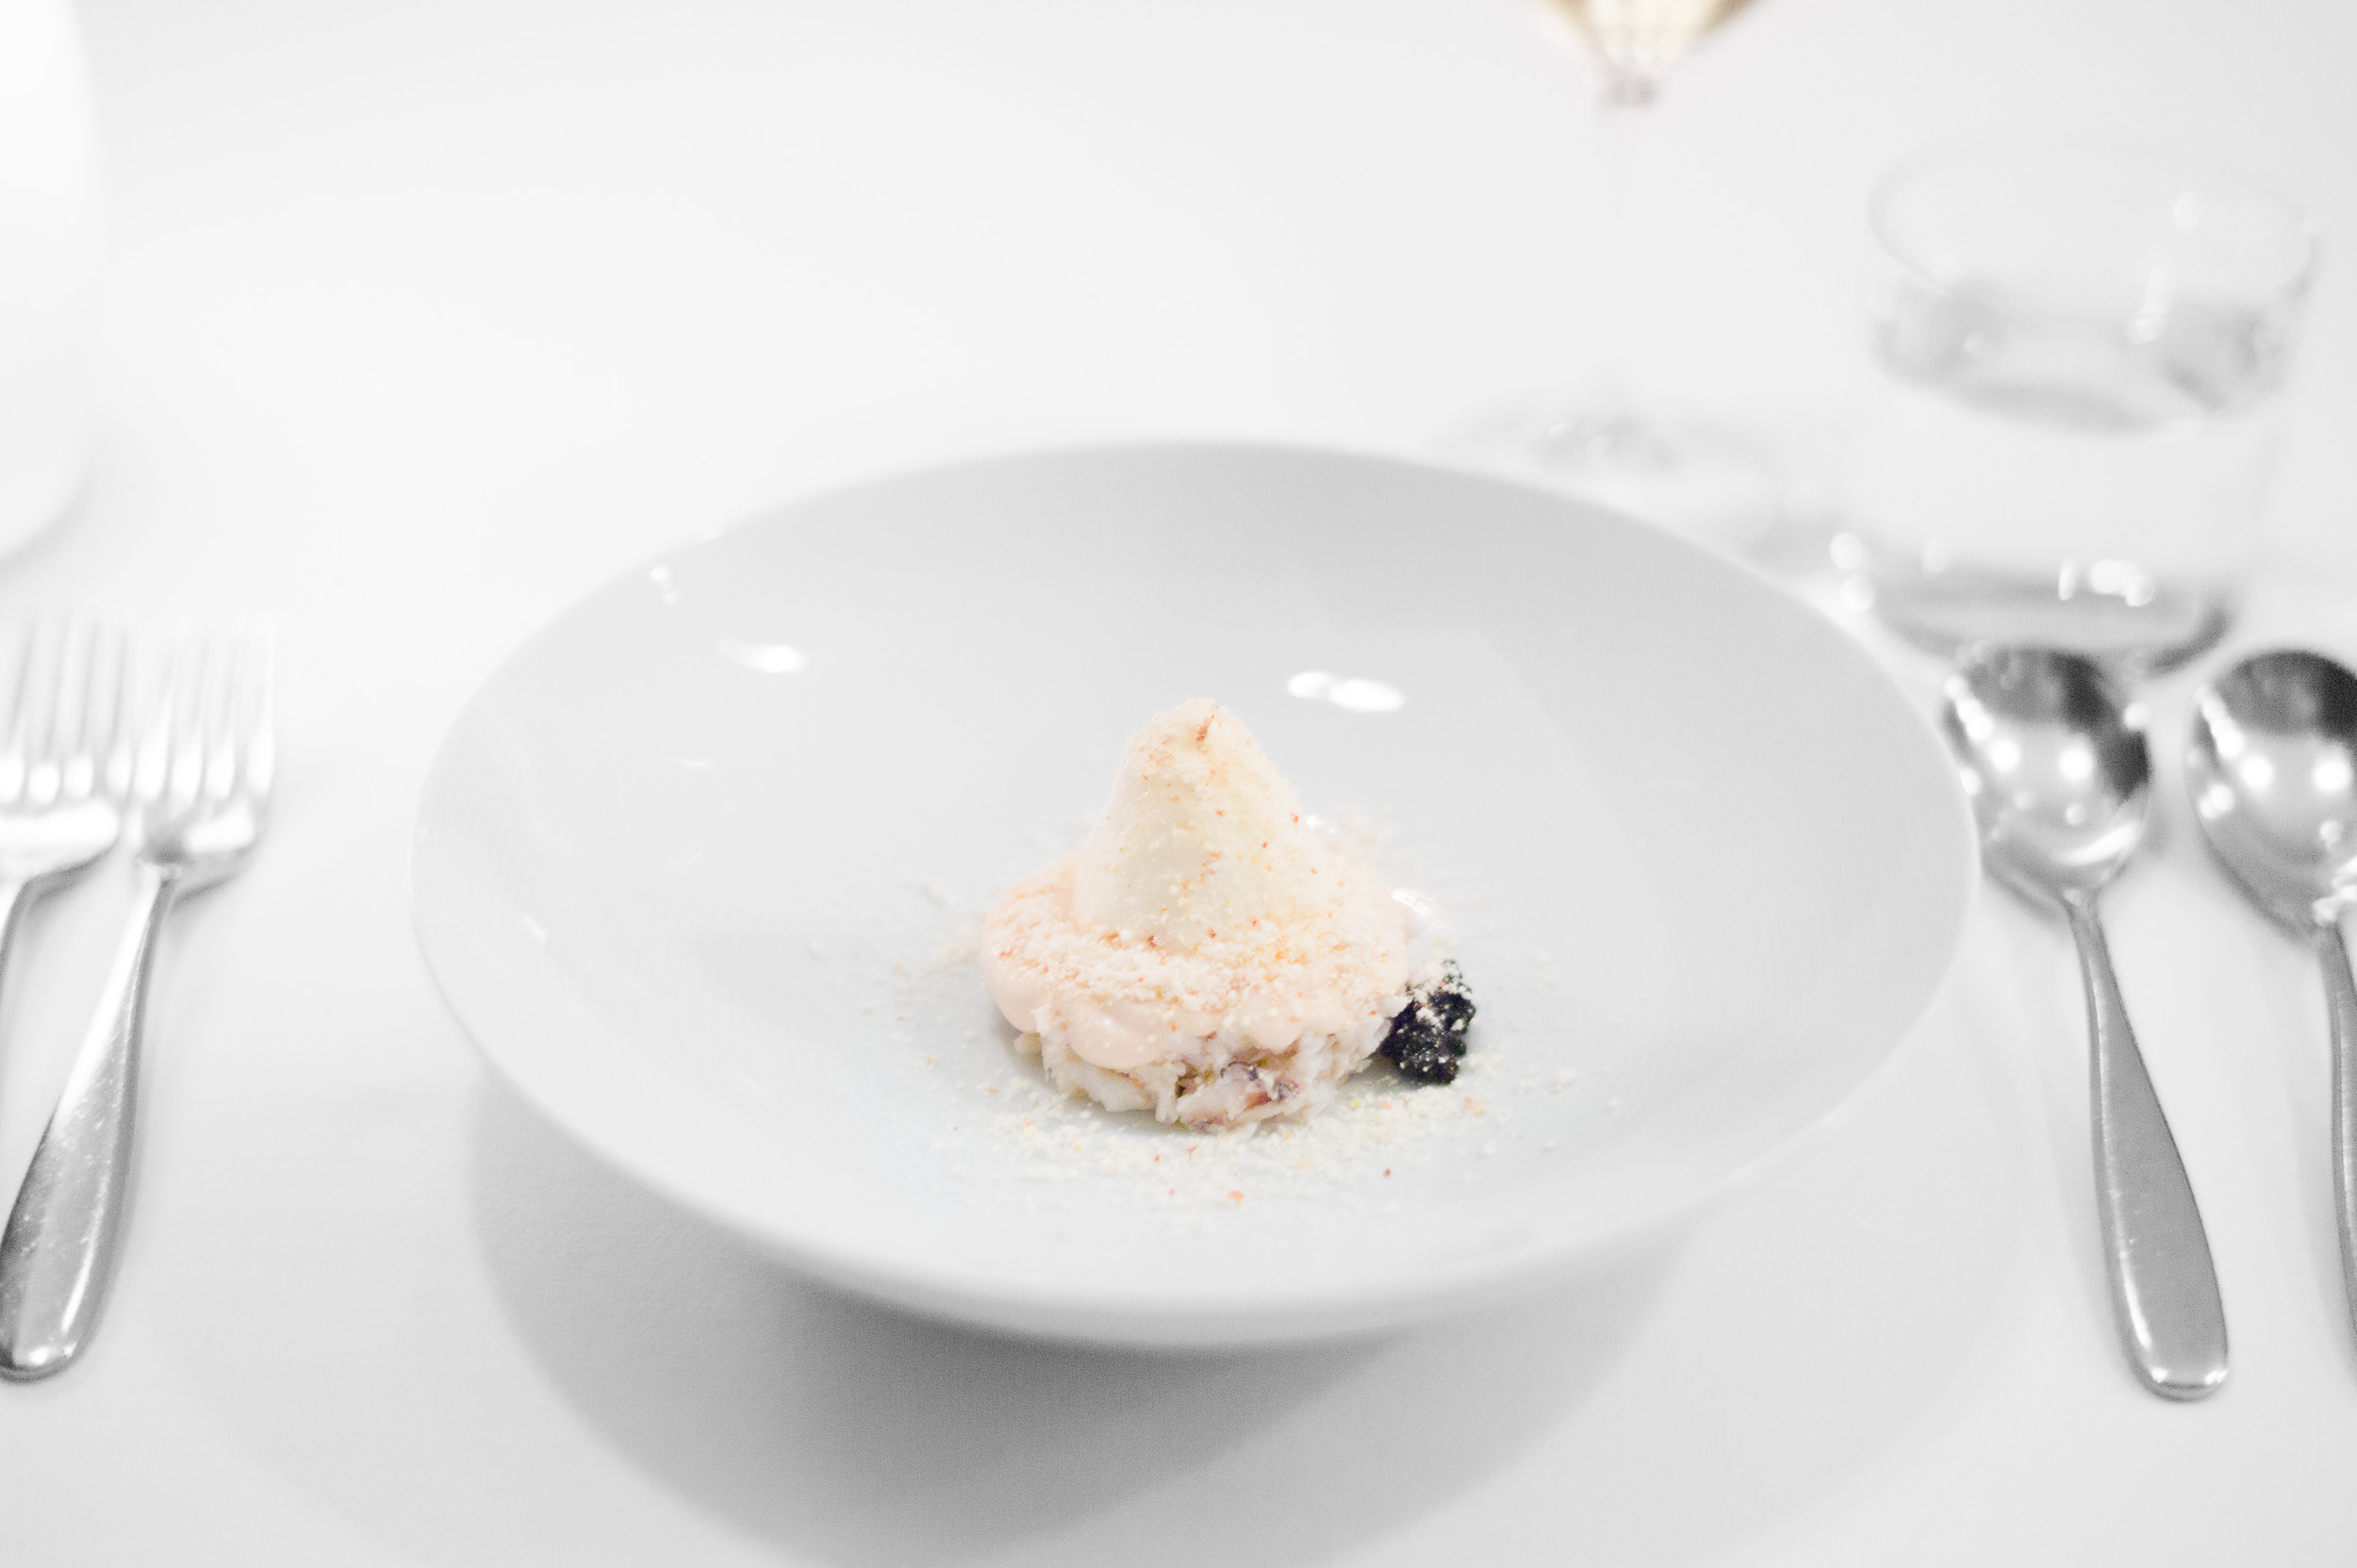 2nd Course: Blue swimmer crab with almond gazpacho, almond jelly